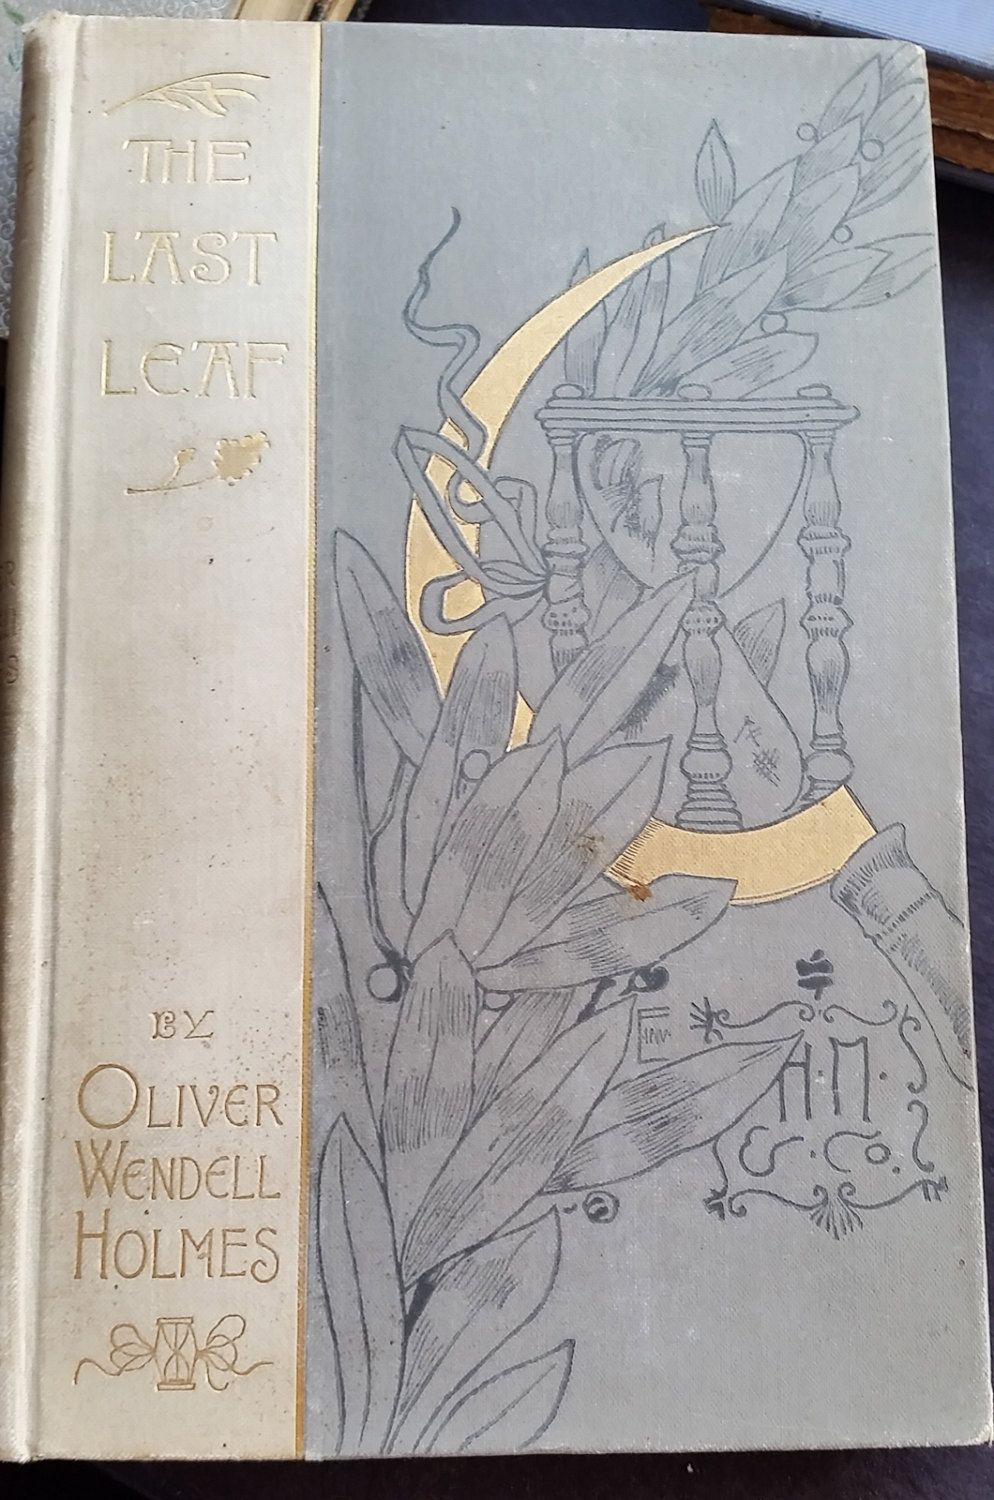 RARE Art Nouveau/Arts & Crafts Book The Last Leaf by Oliver Wendell